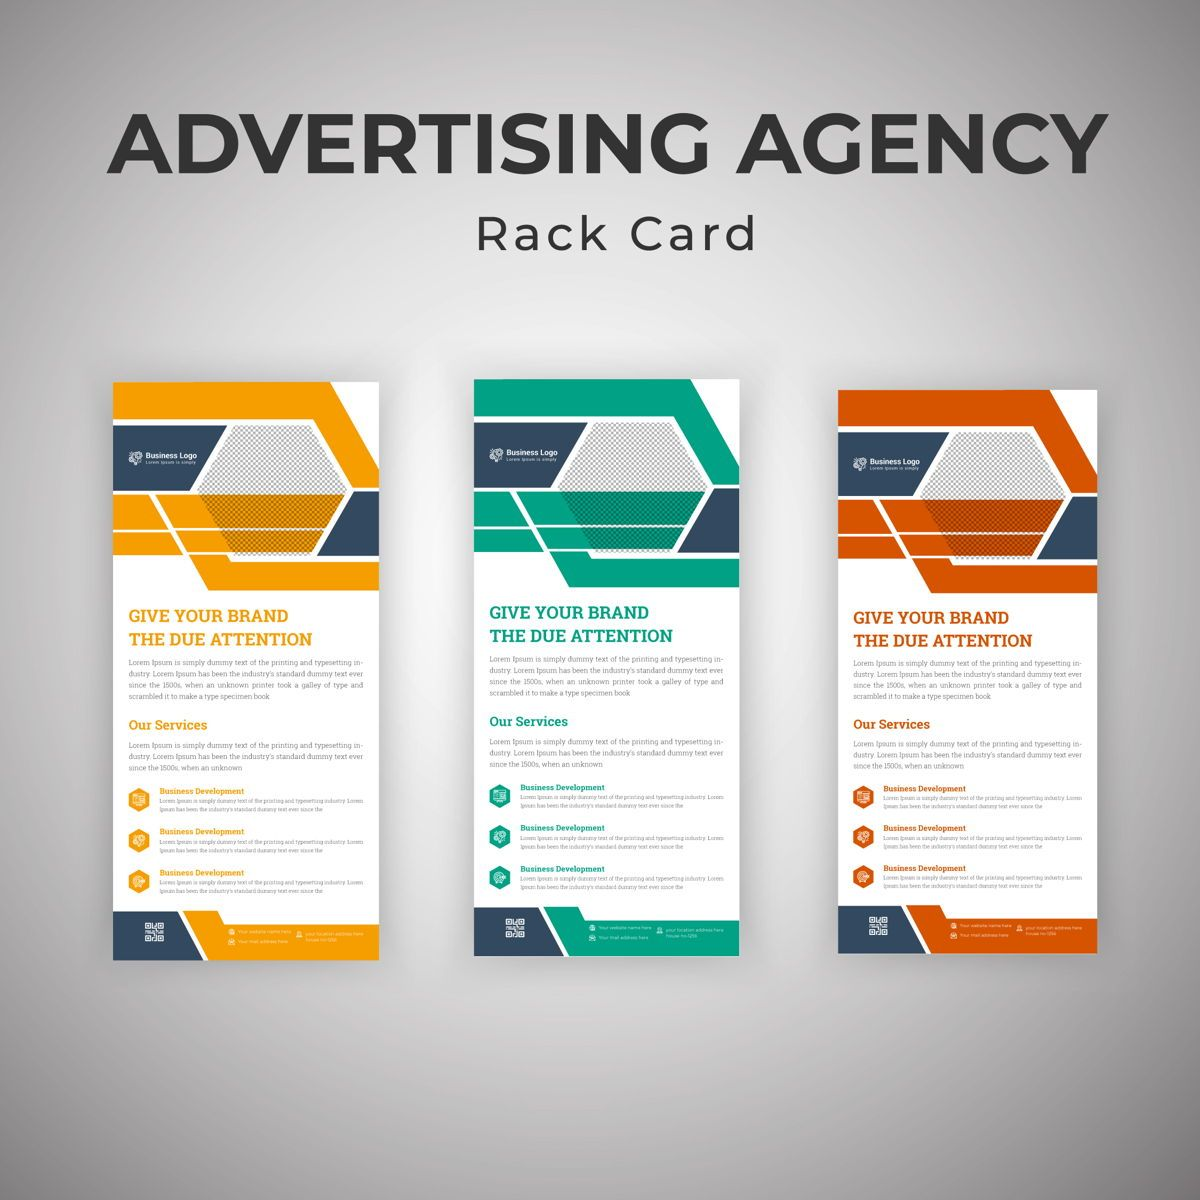 Latest Advertising Agency Services Rack Card Or Dl Flyer Template, Slide 3, 08793, Business — PoweredTemplate.com